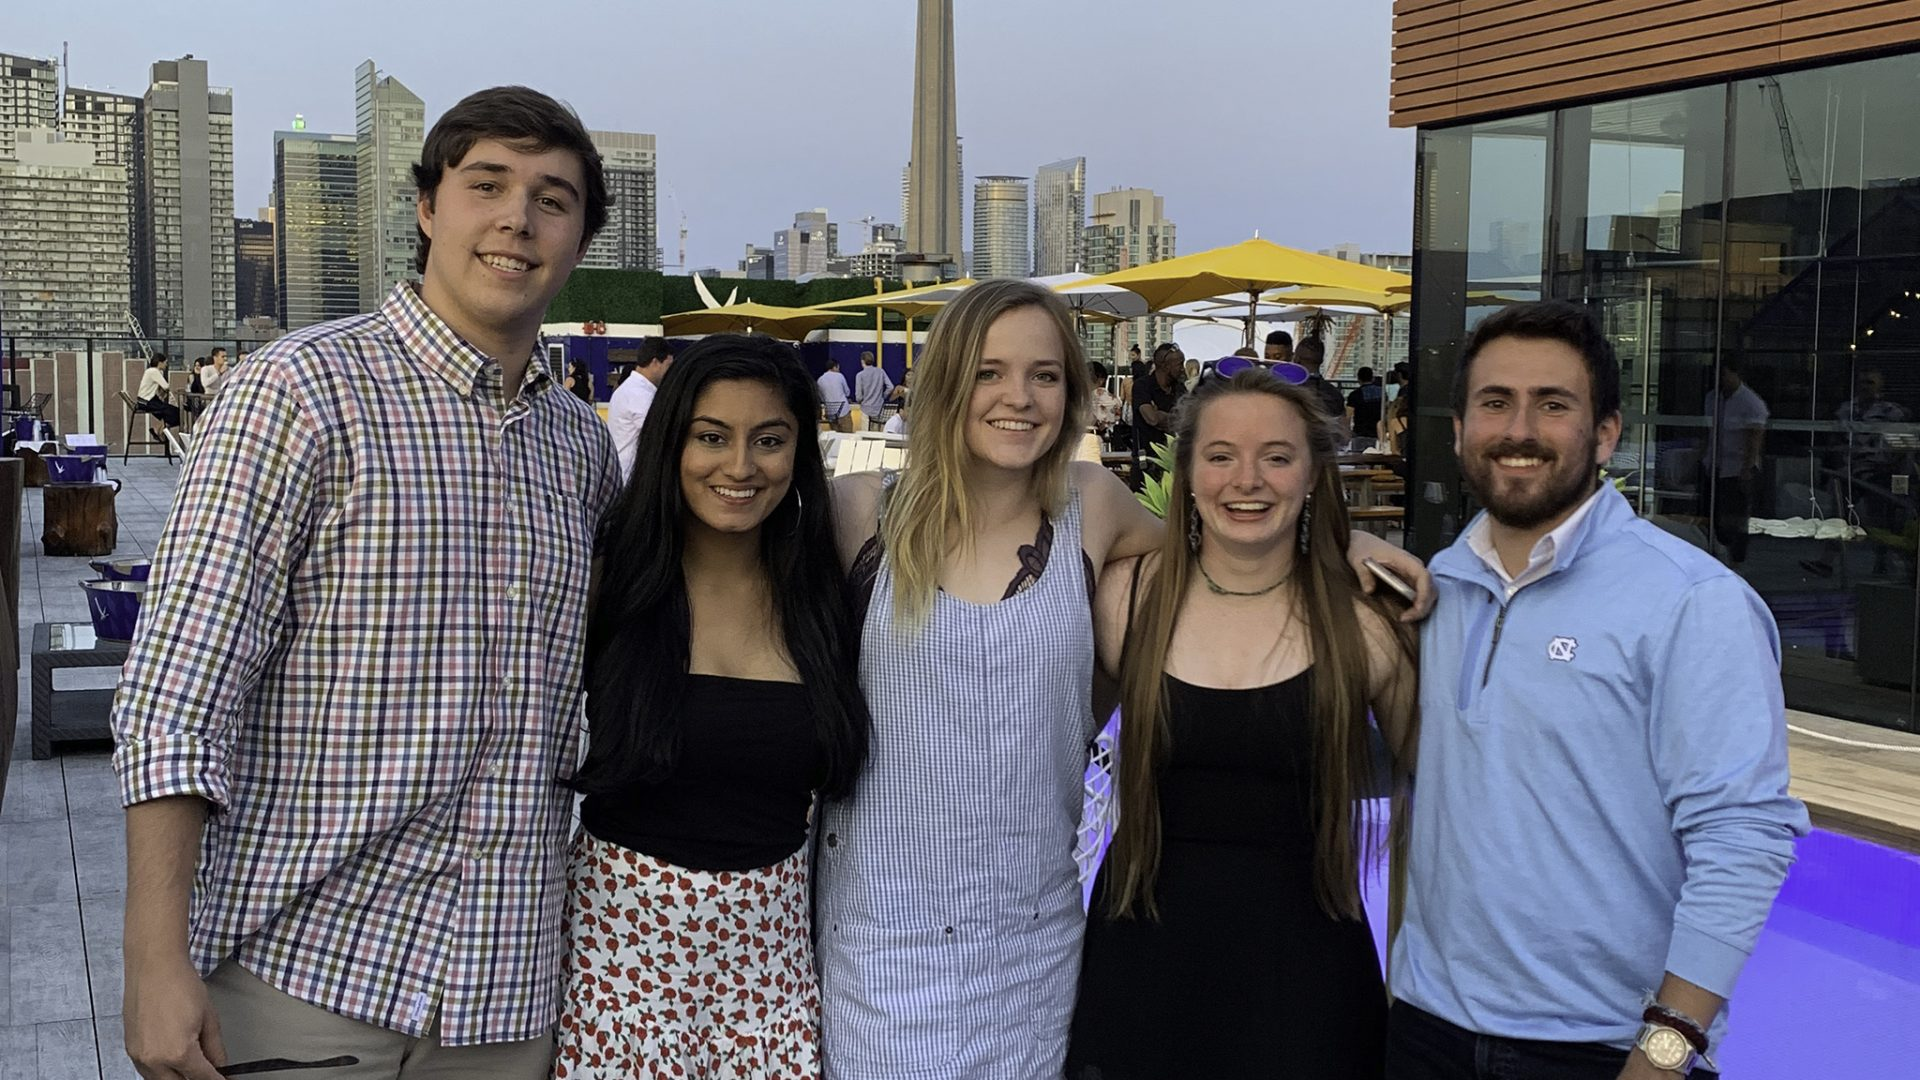 Group photo of Bobby McQueen, Jaya Mishra, Maggie Helmke, Megan Lienau, and Alex Mazer.